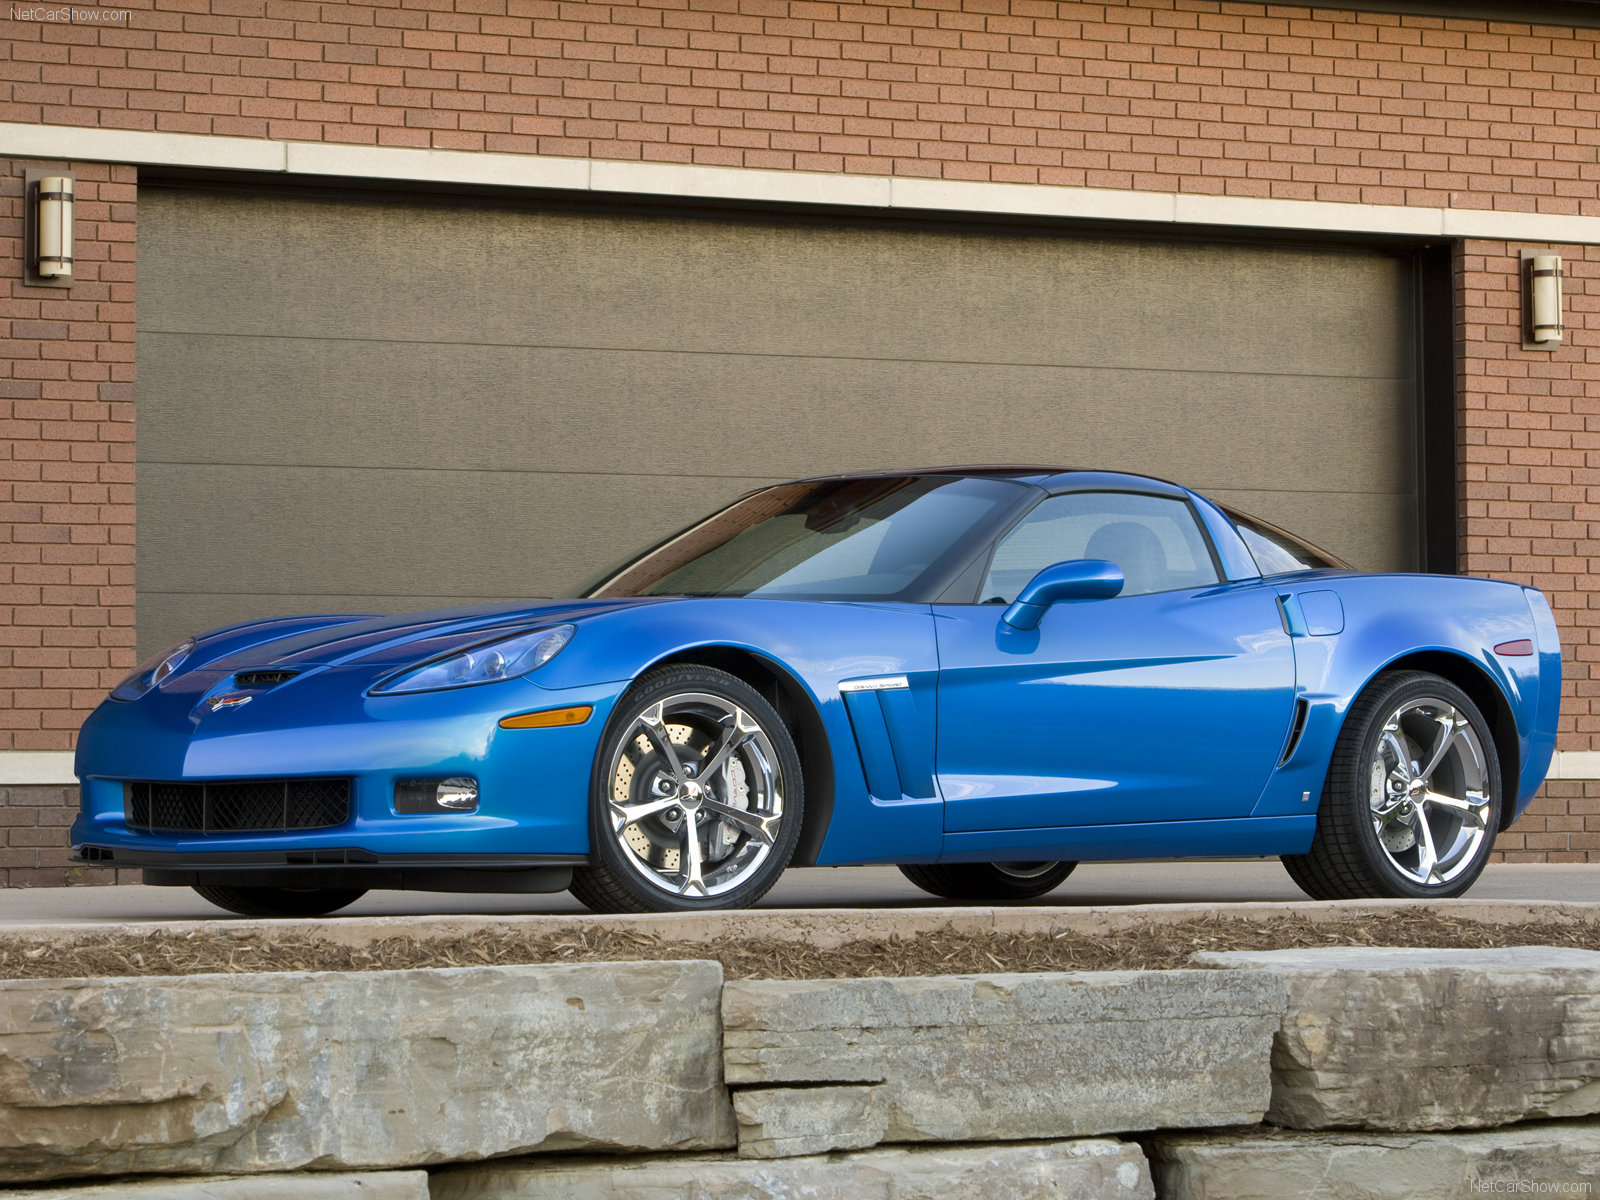 Chevrolet Corvette Grand Sport picture # 64828 | Chevrolet photo